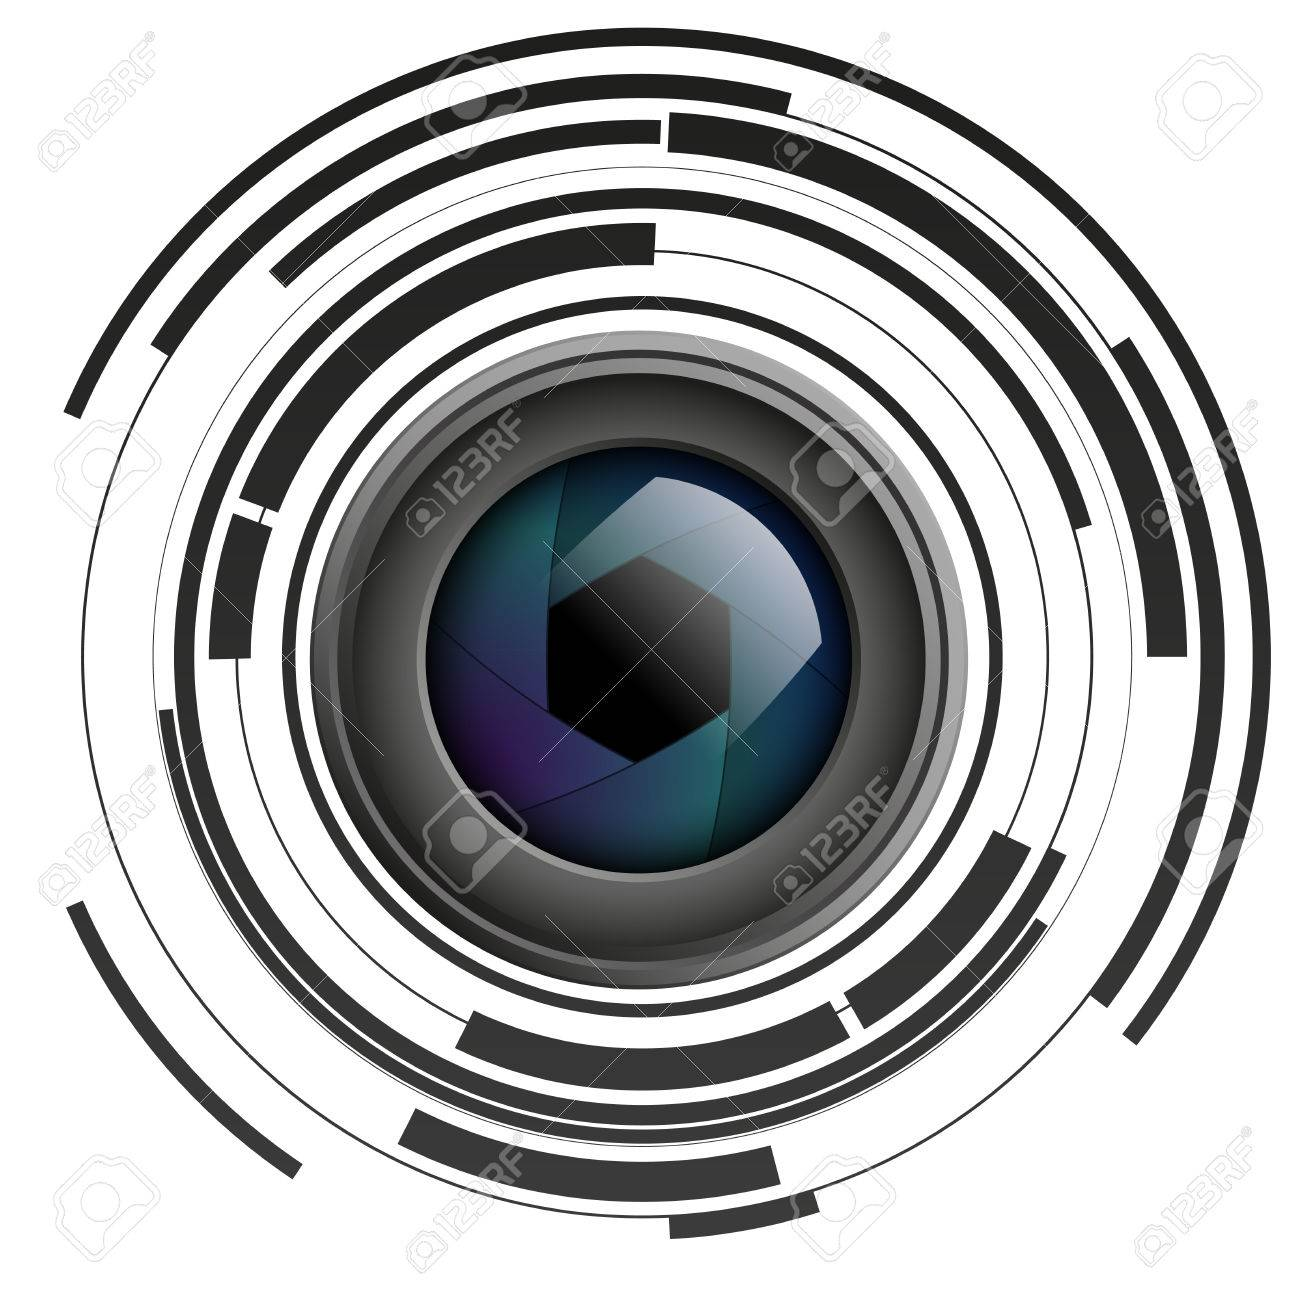 shutter apertures on abstract background camera objective lens rh 123rf com camera lens vector illustrator camera lens vector black and white